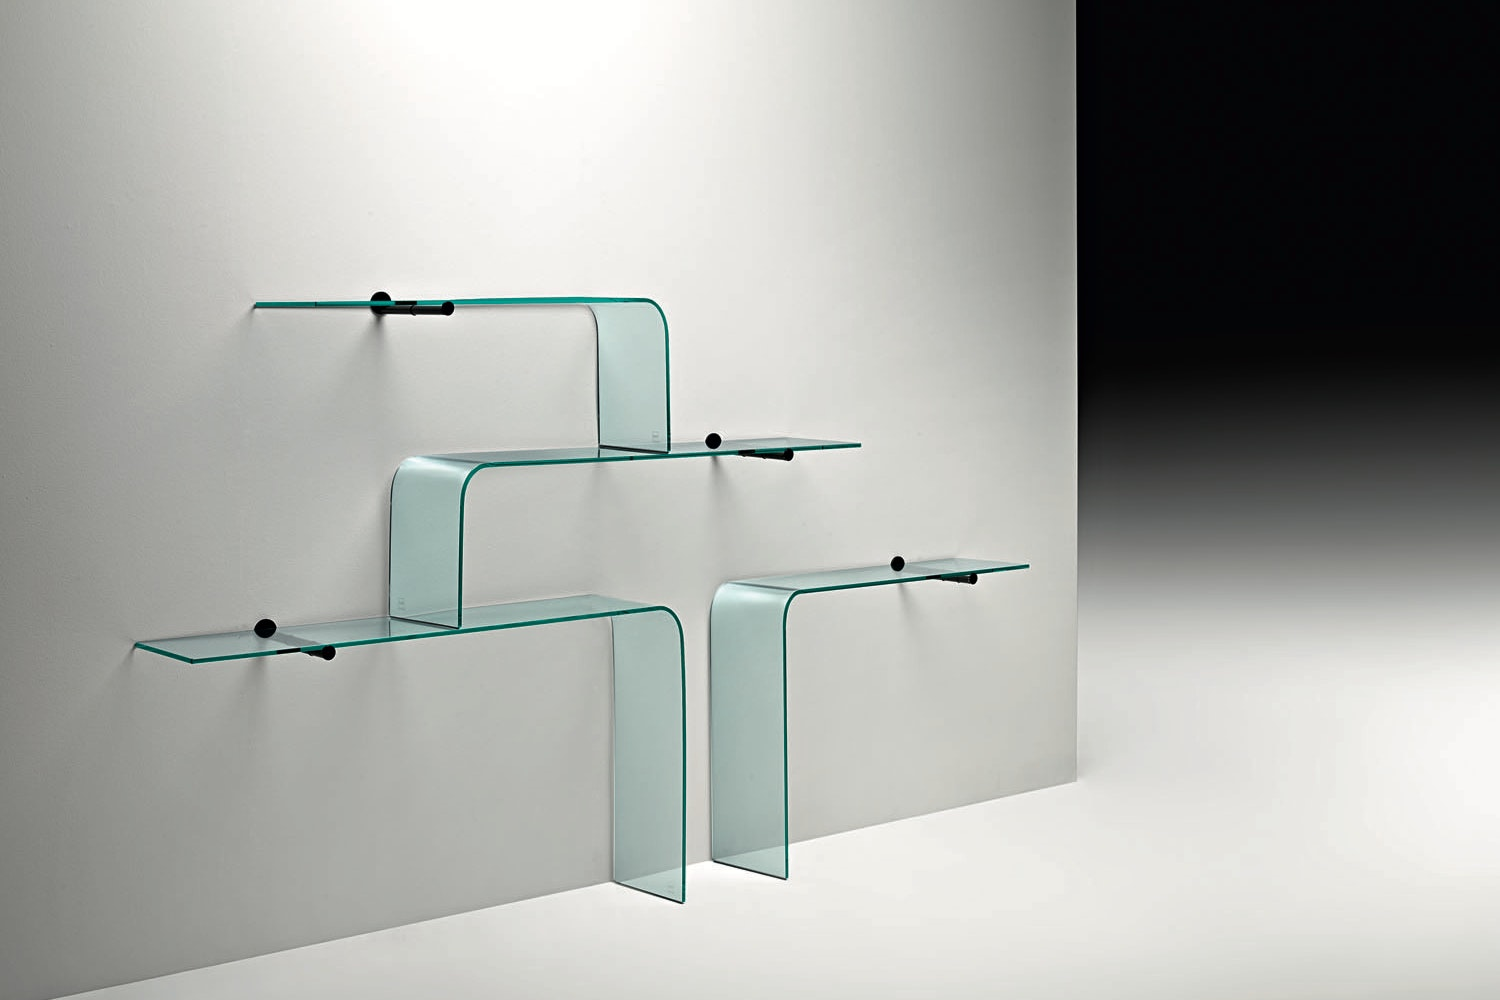 Mensole Shelf by Leonardo Gerussi Carlo Mariano Sartoris for Fiam Italia